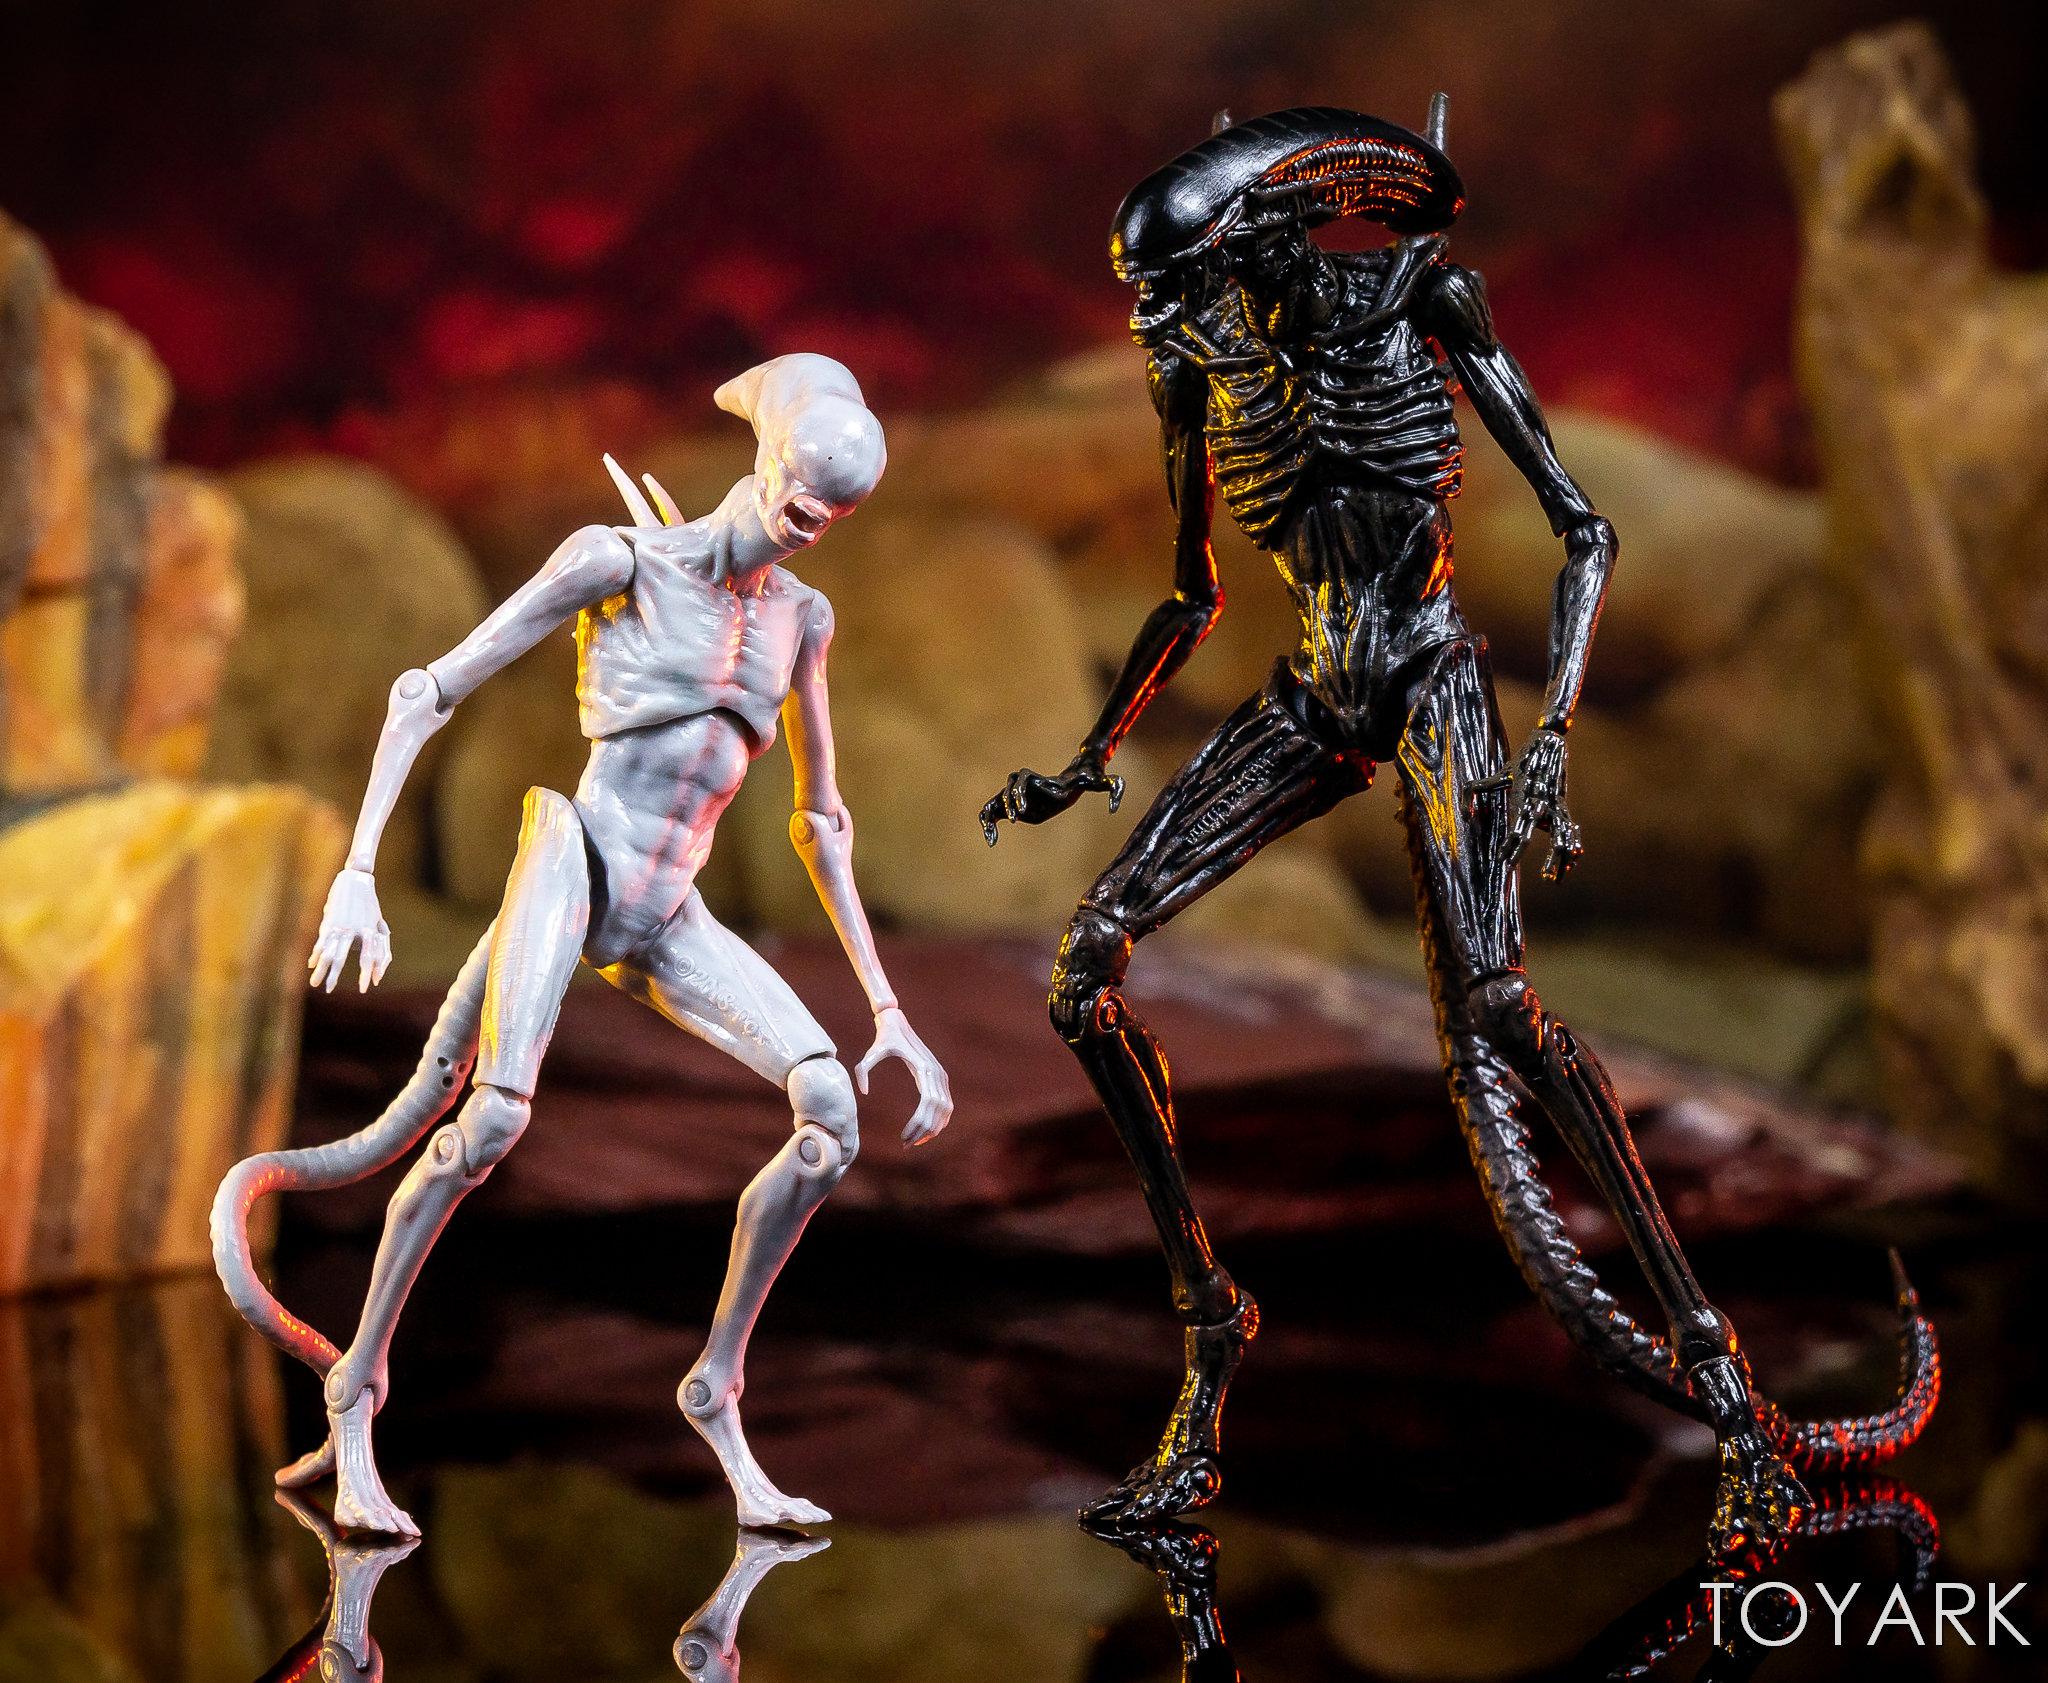 https://news.toyark.com/wp-content/uploads/sites/4/2019/02/Hiya-Toys-Alien-Covenant-Figures-040.jpg